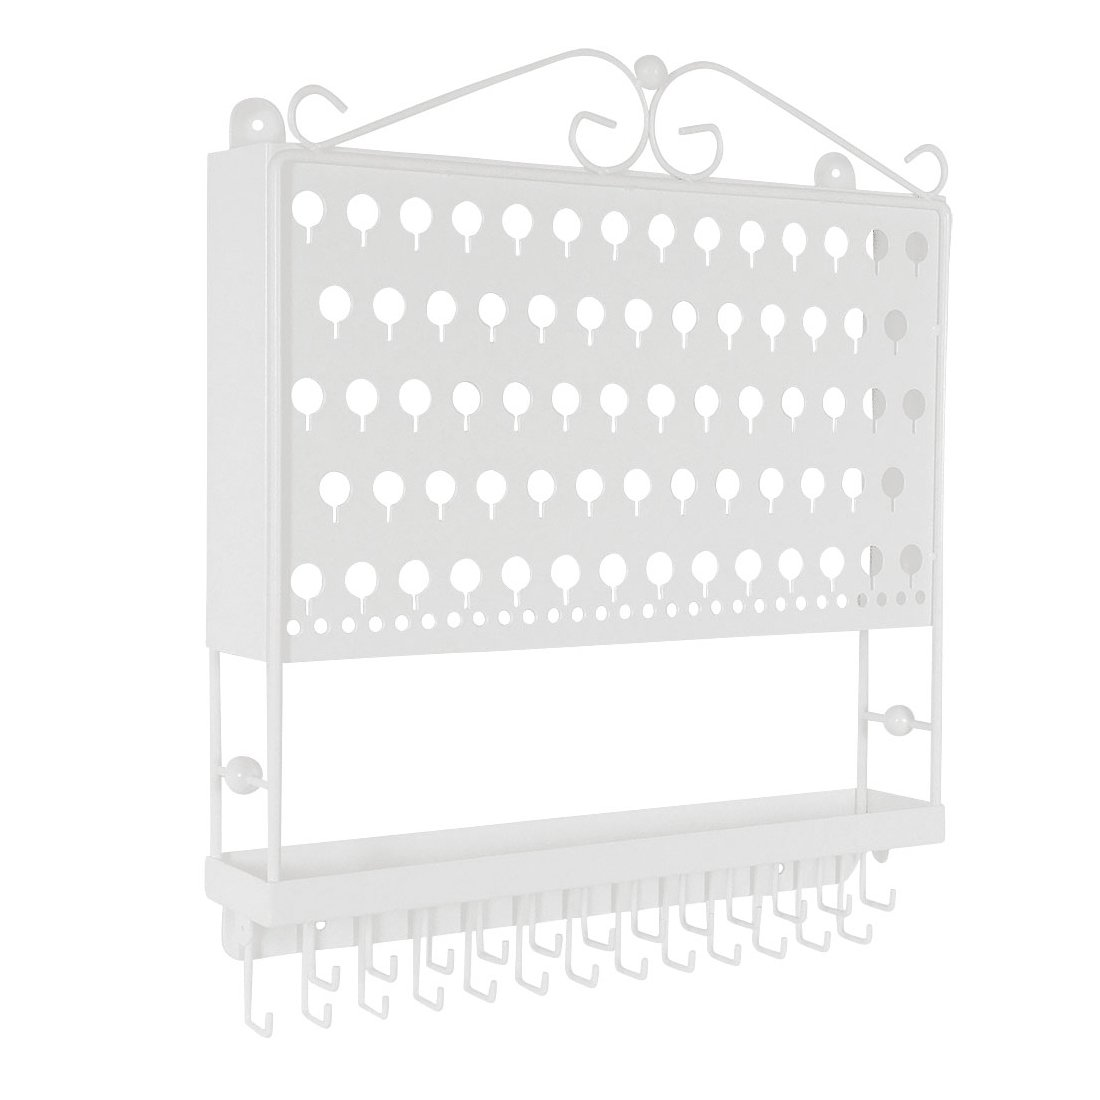 Designers Impressions JR20-WH White Wall Mounted Organizer Necklace Holder Earring & Jewelry Display Rack with Tray